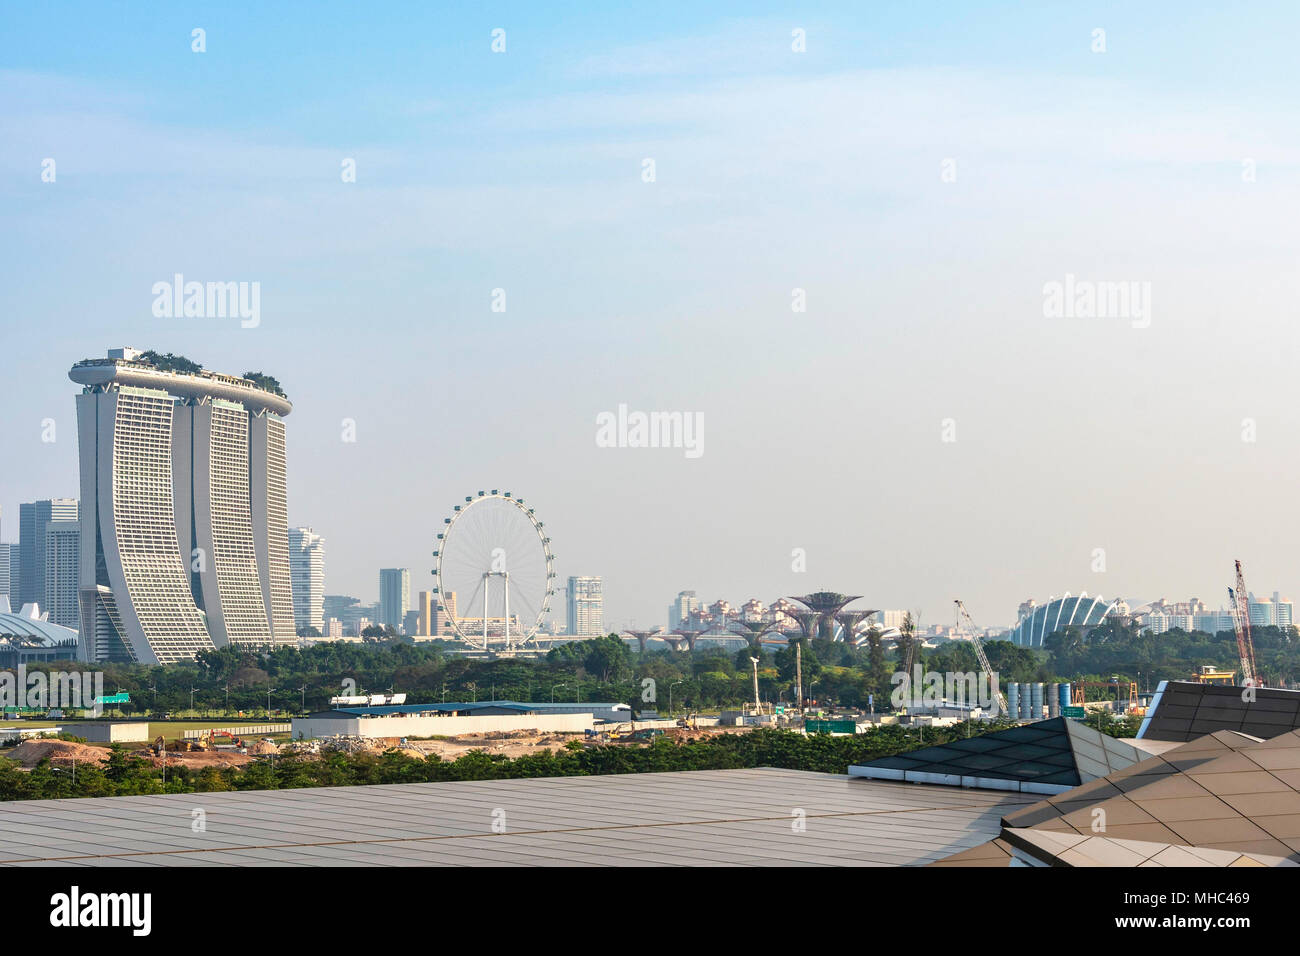 Singapore Attractions Stock Photos Amp Singapore Attractions Stock Images Alamy